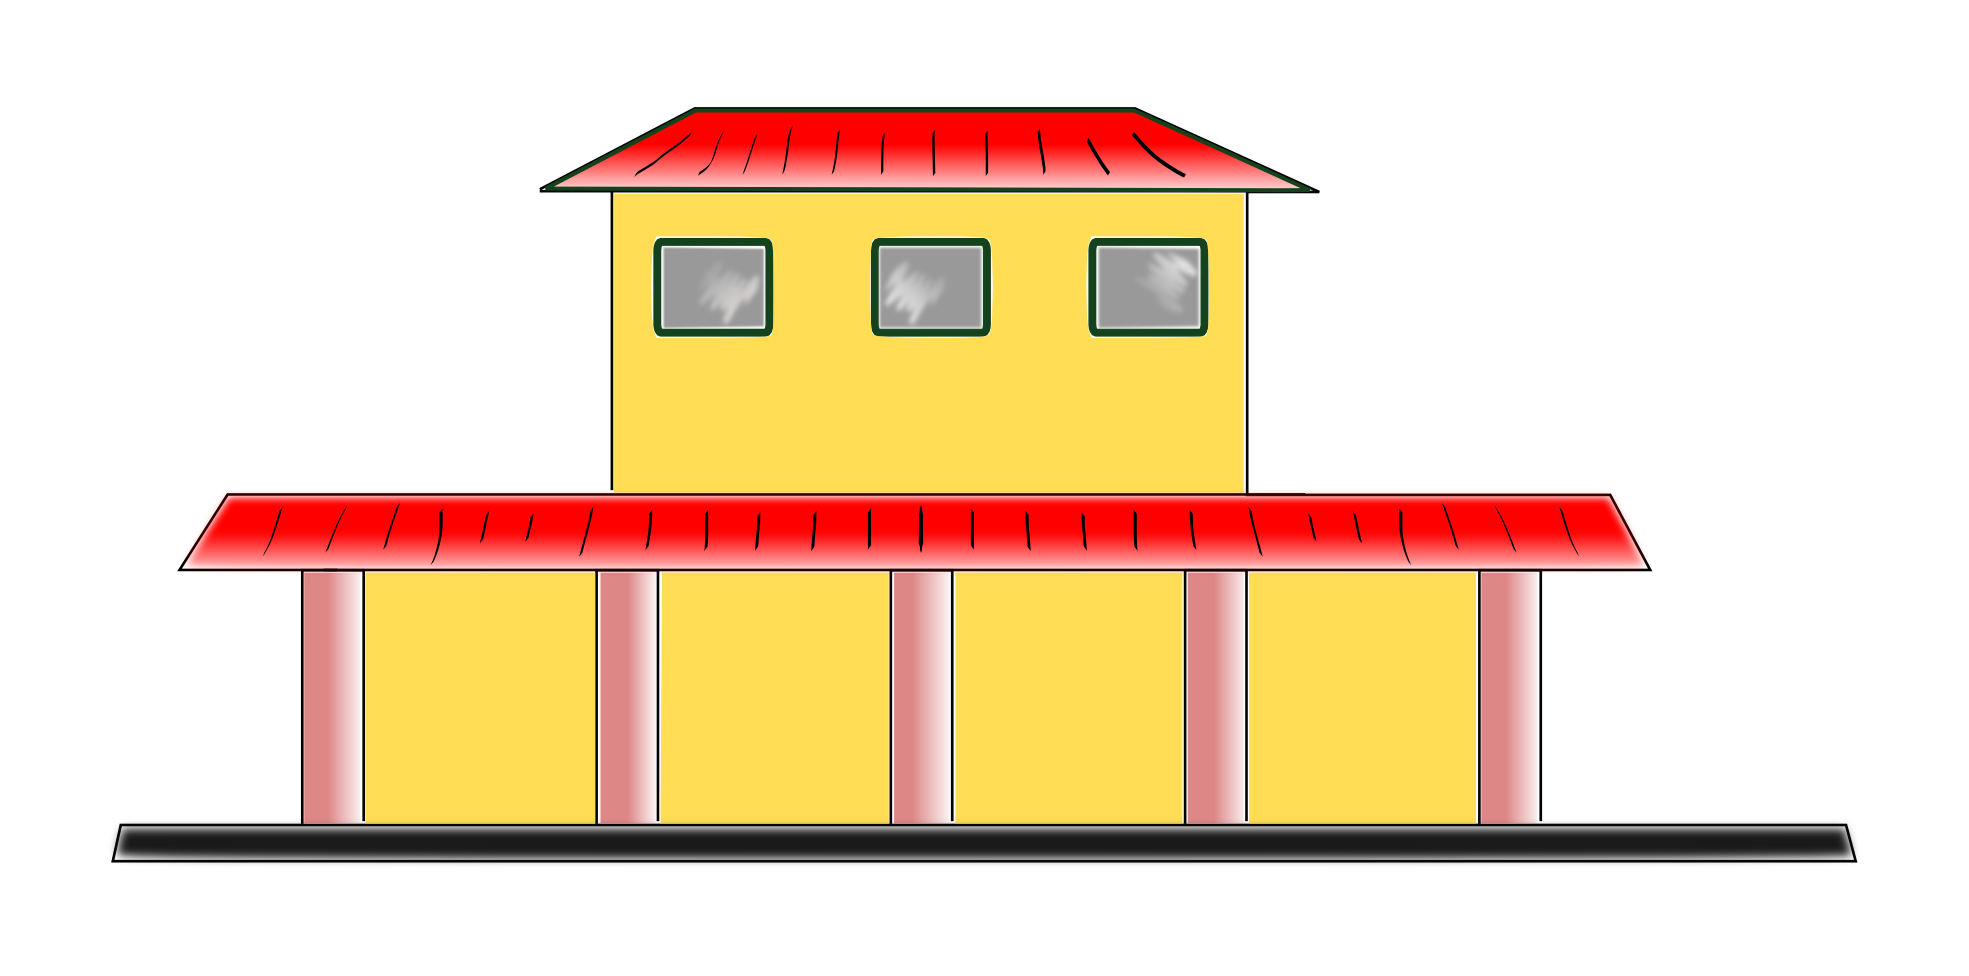 Train Station clipart train stop Clipart Clipart Train Station Panda